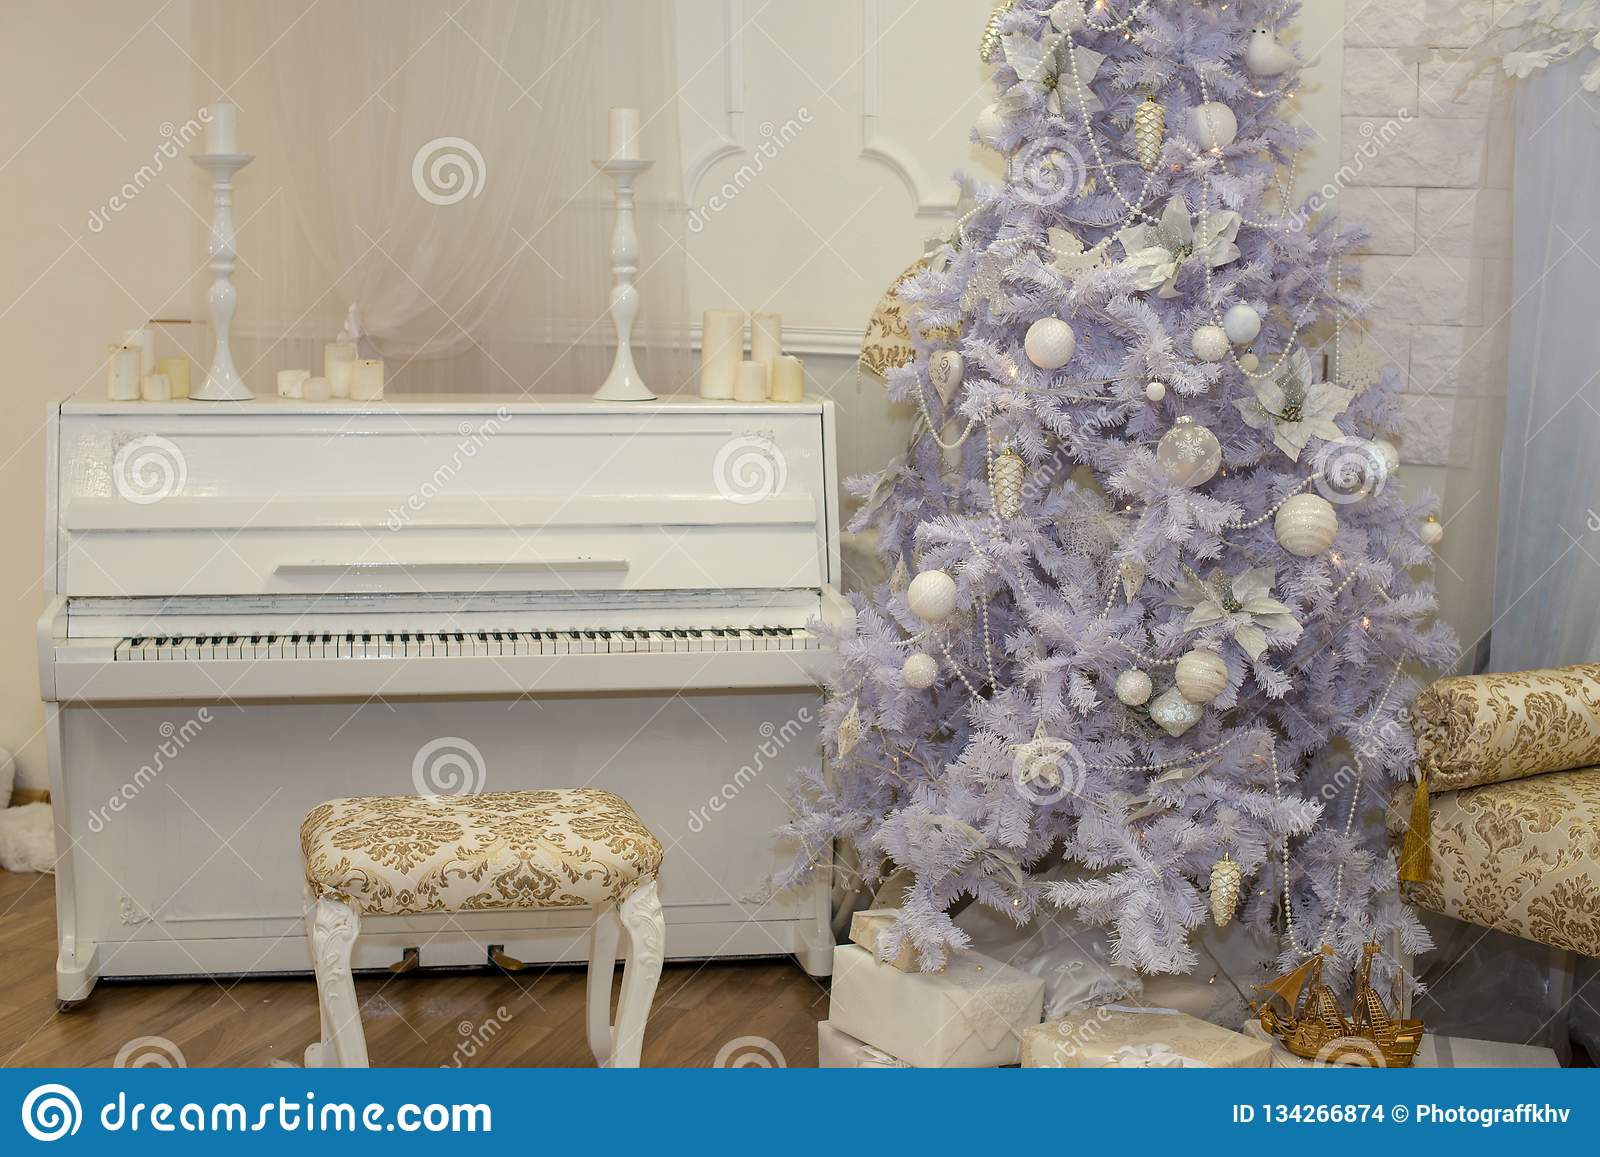 White Christmas Tree Decorated With Silver And Pink Ornaments At The Piano Background Winter Scene New Year Decoration Xmas Stock Photo Image Of Gift Home 134266874